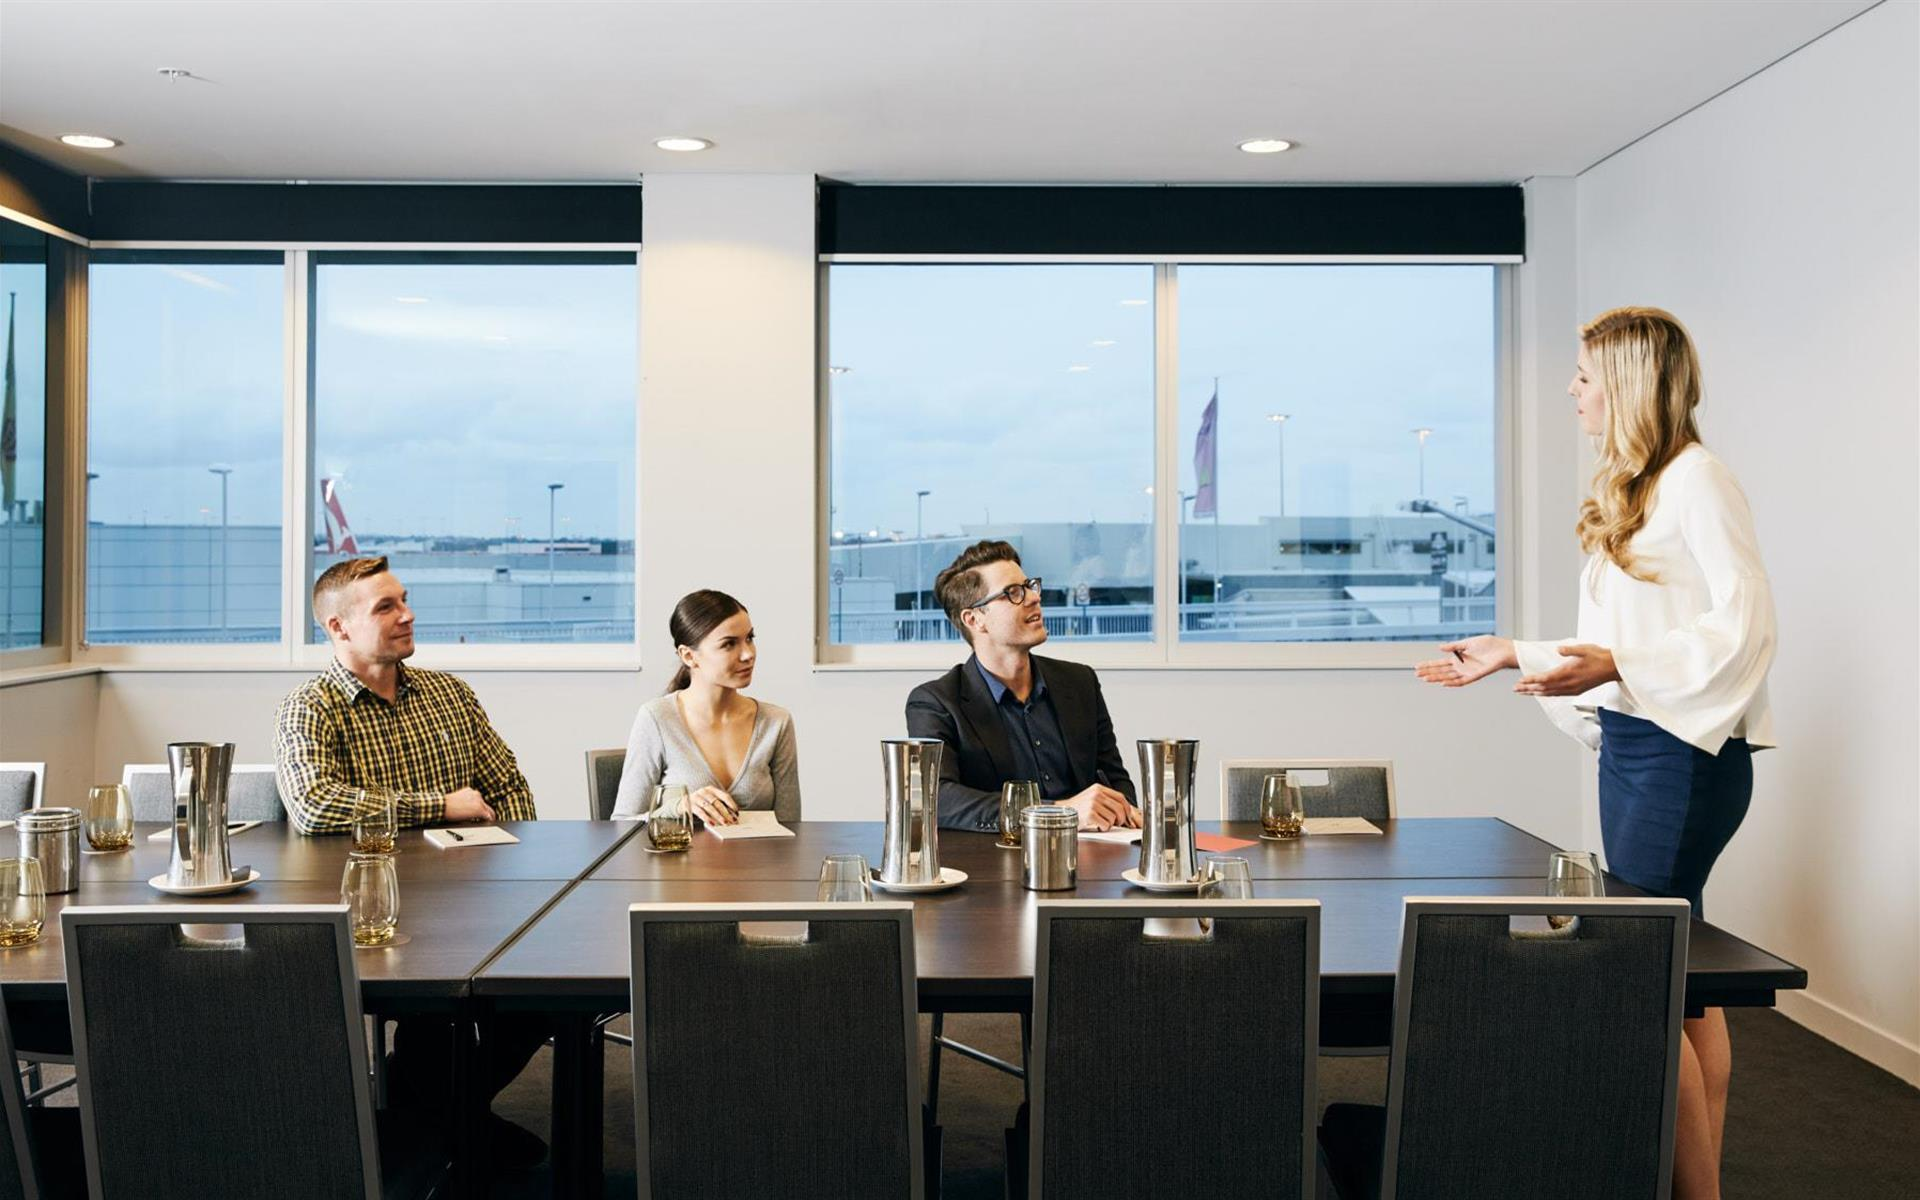 Meeting Rooms at the Airport